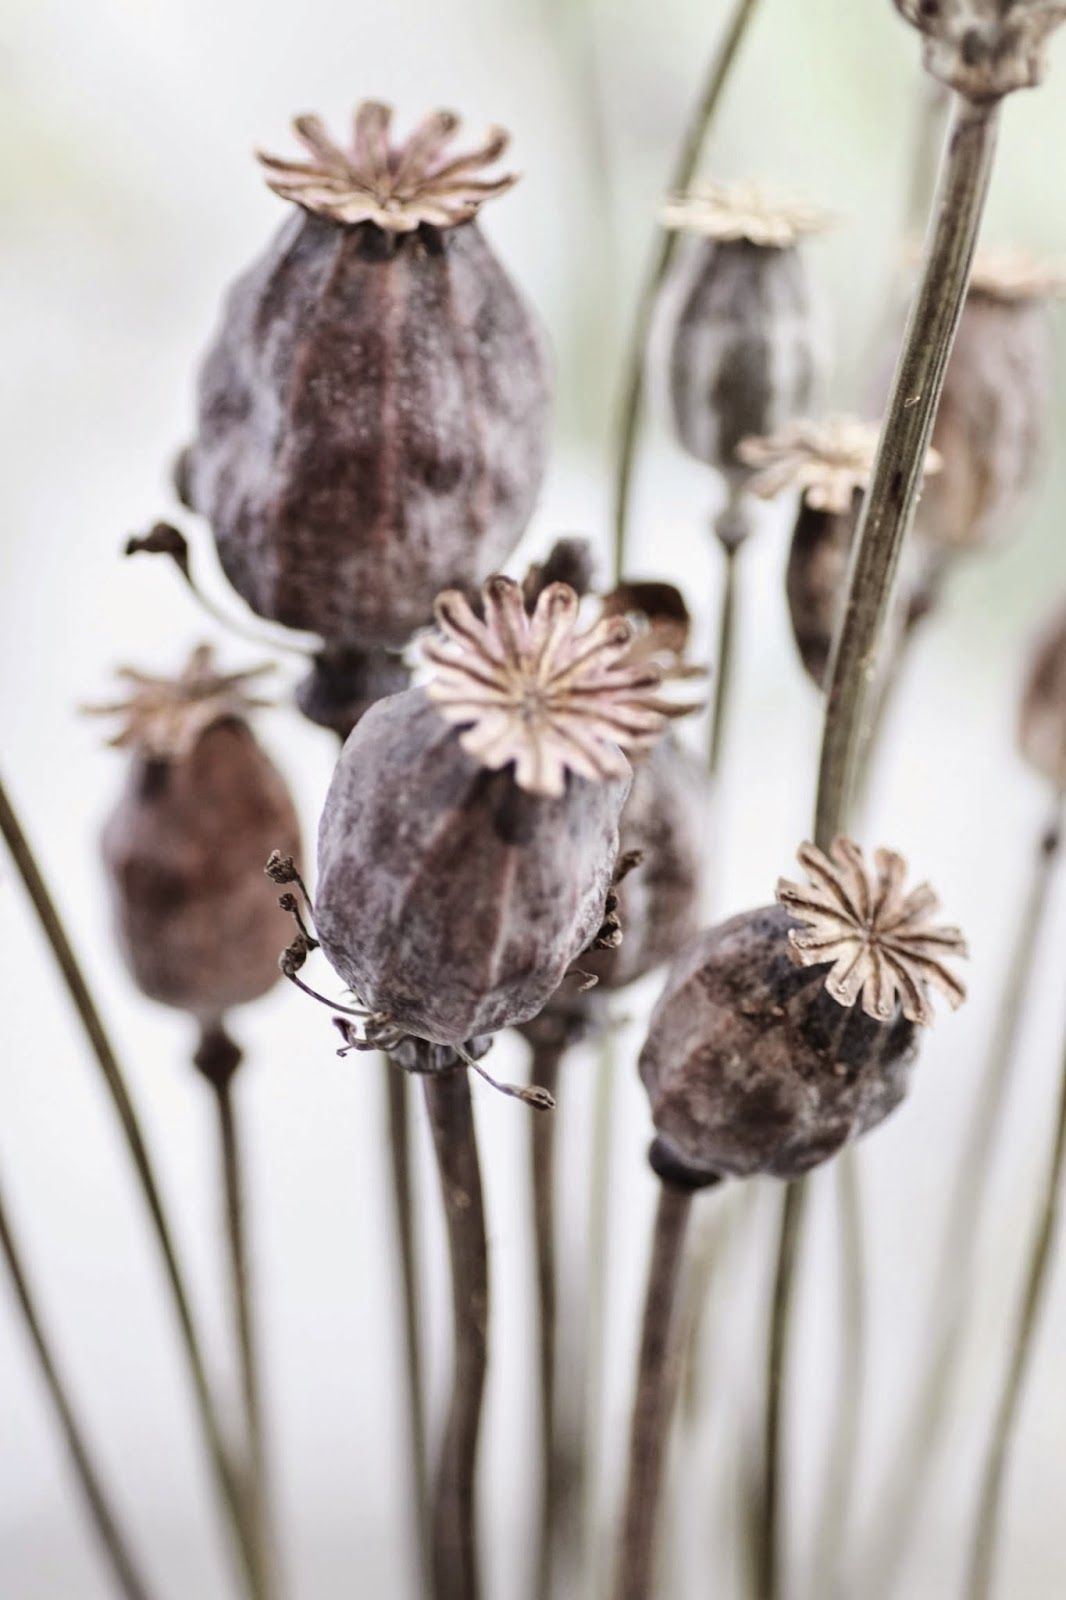 Landet jrna stockholm via heimelig blog reftotrain pinterest its fun to dry poppy heads and stems for decorations easy to dry by hanging and then can be spray painted a color you like for an accent mightylinksfo Gallery